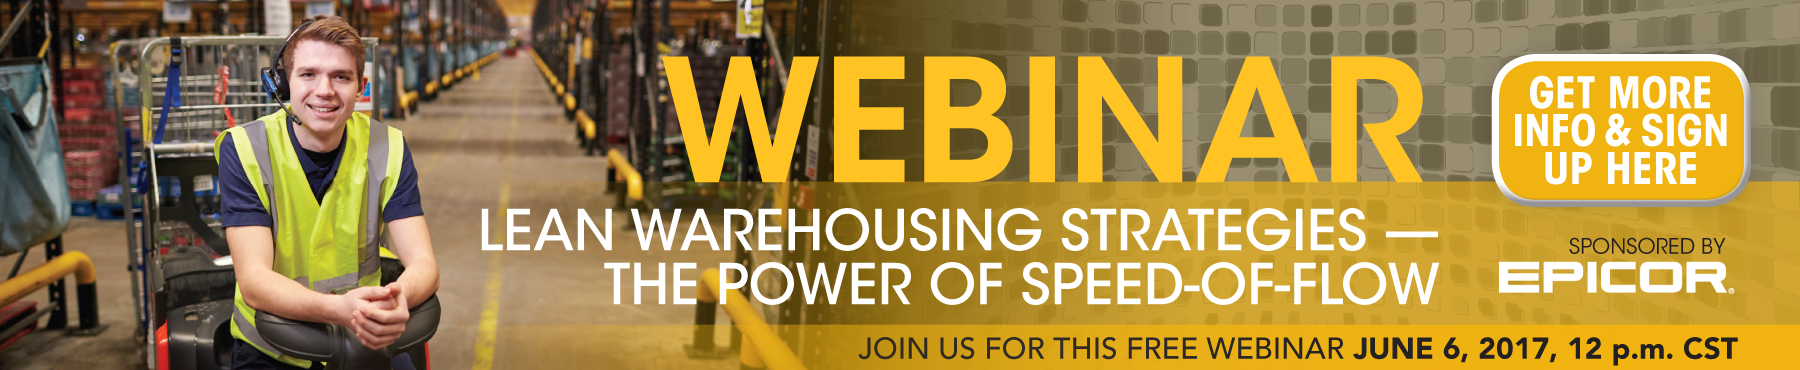 Learn Warehousing Strategies webinar